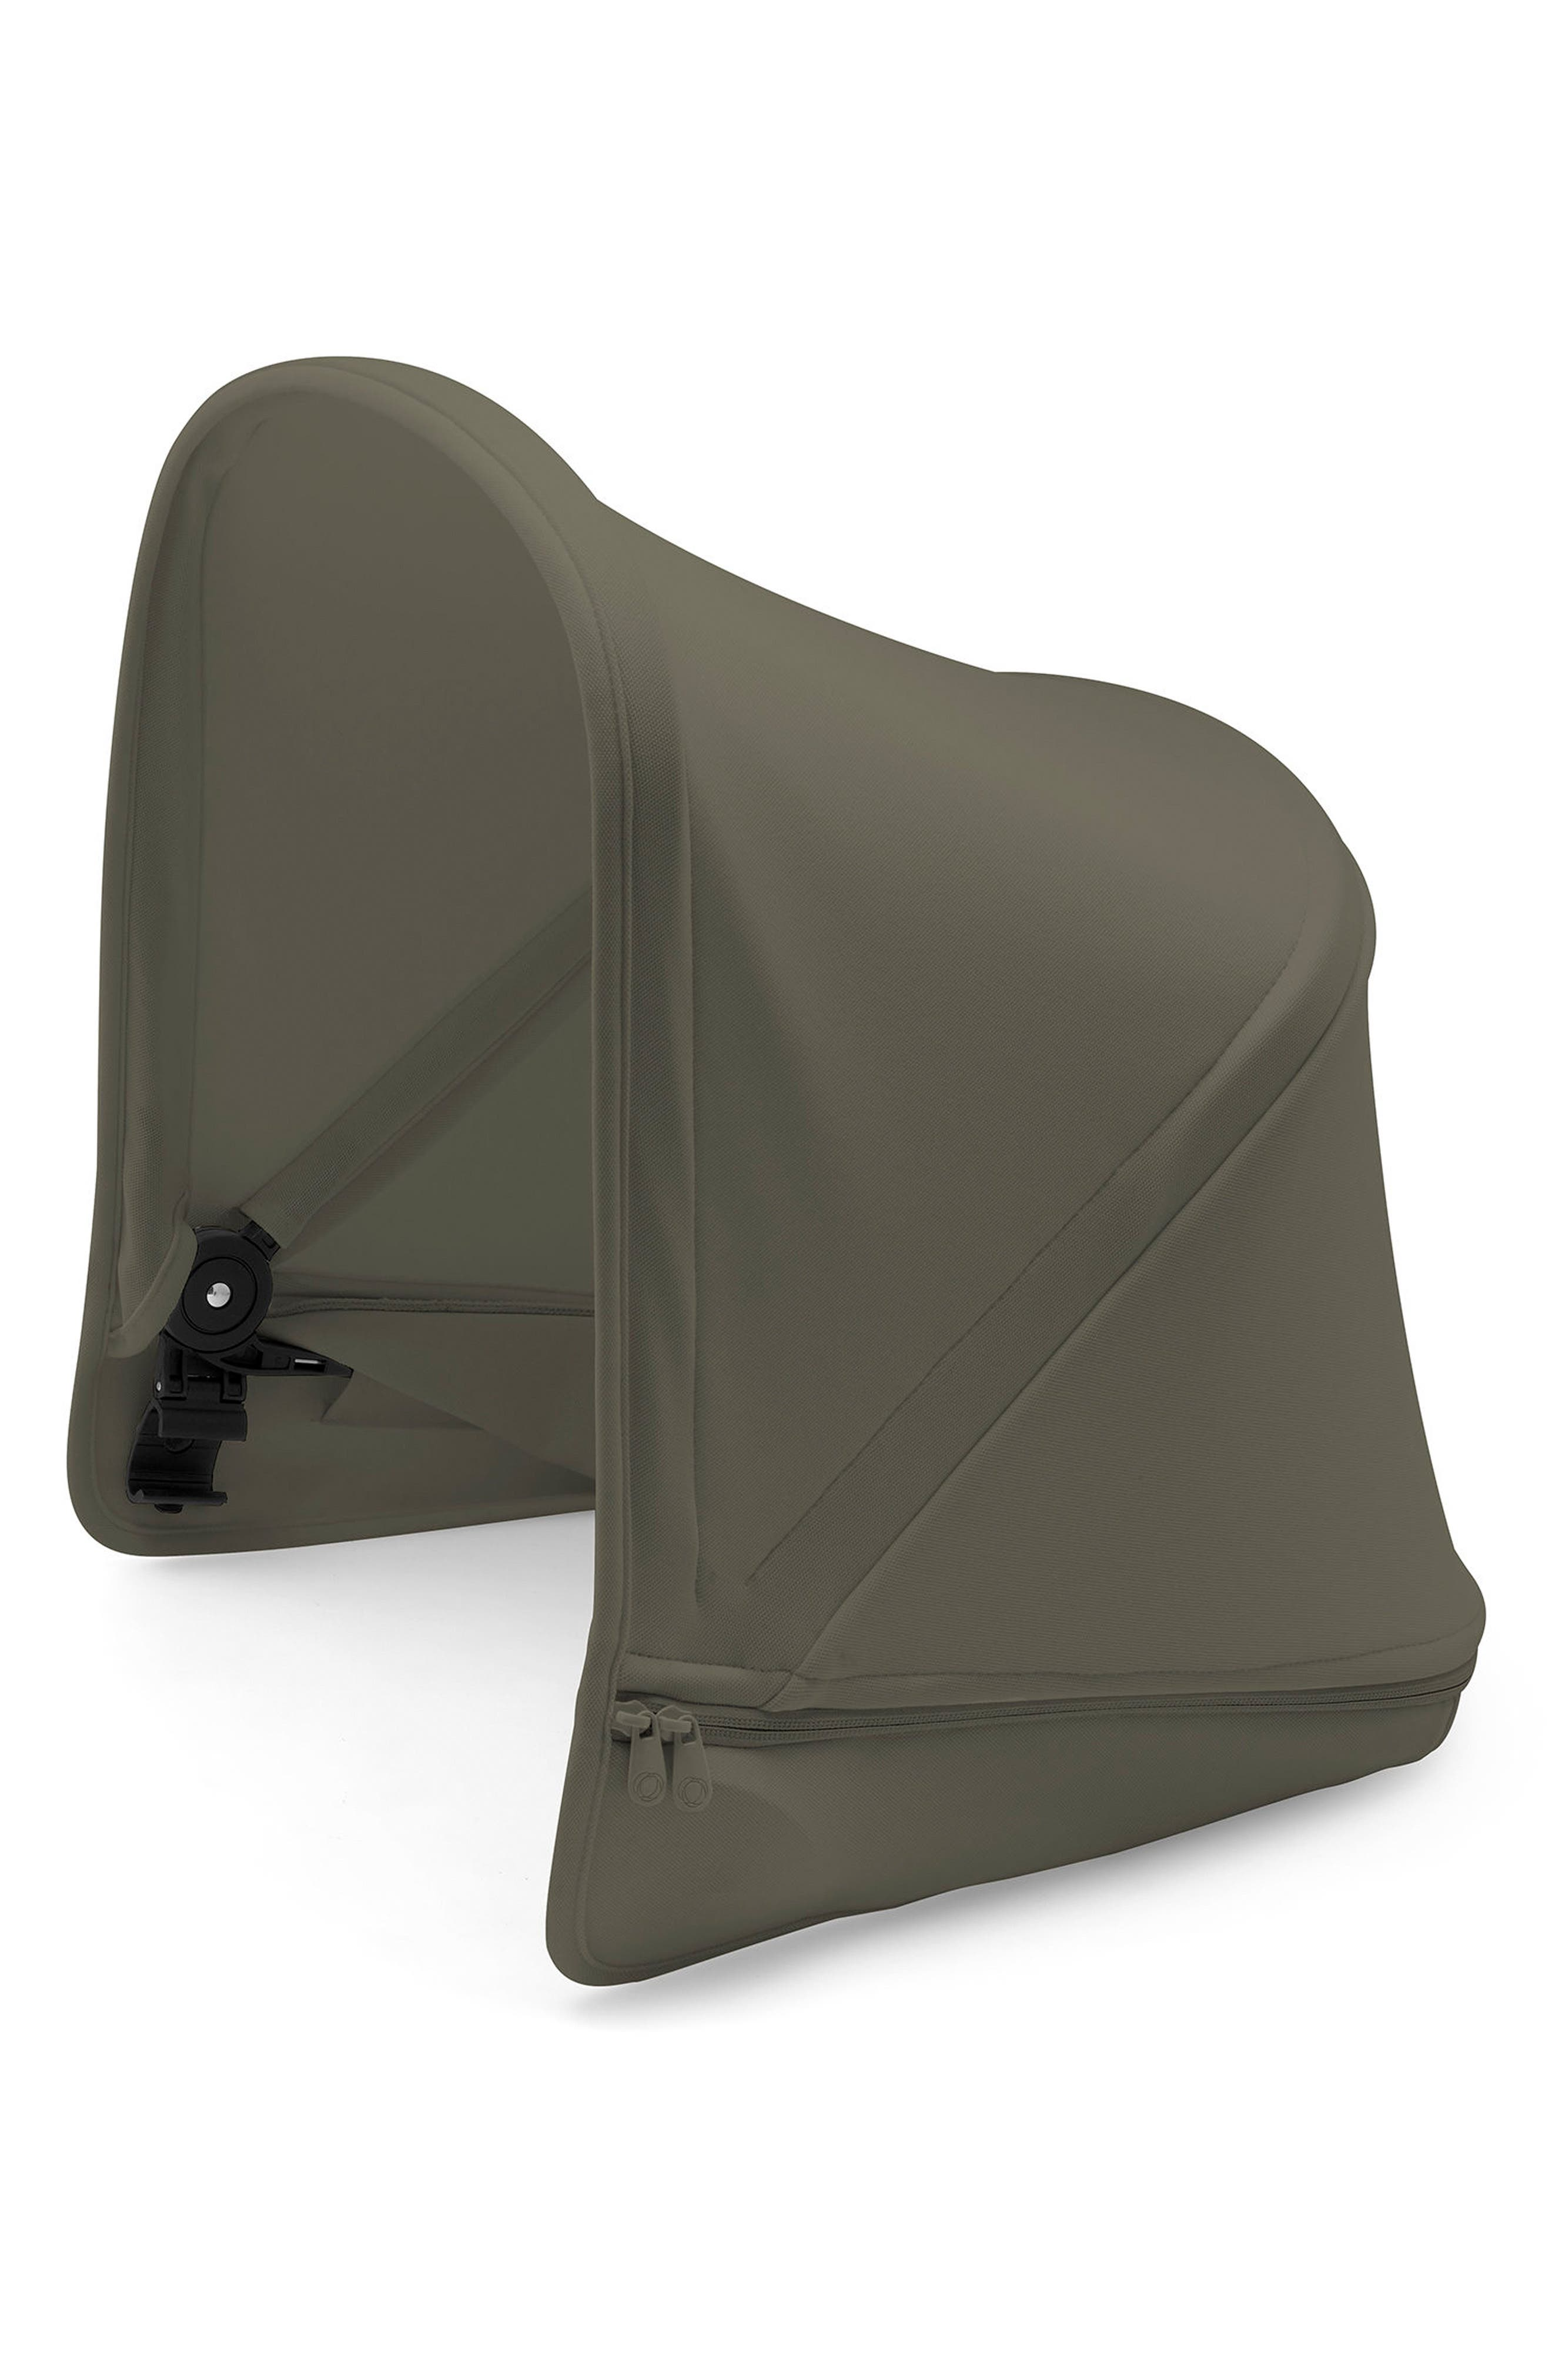 Sun Canopy for Bugaboo Donkey2 Stroller,                         Main,                         color, Olive Green